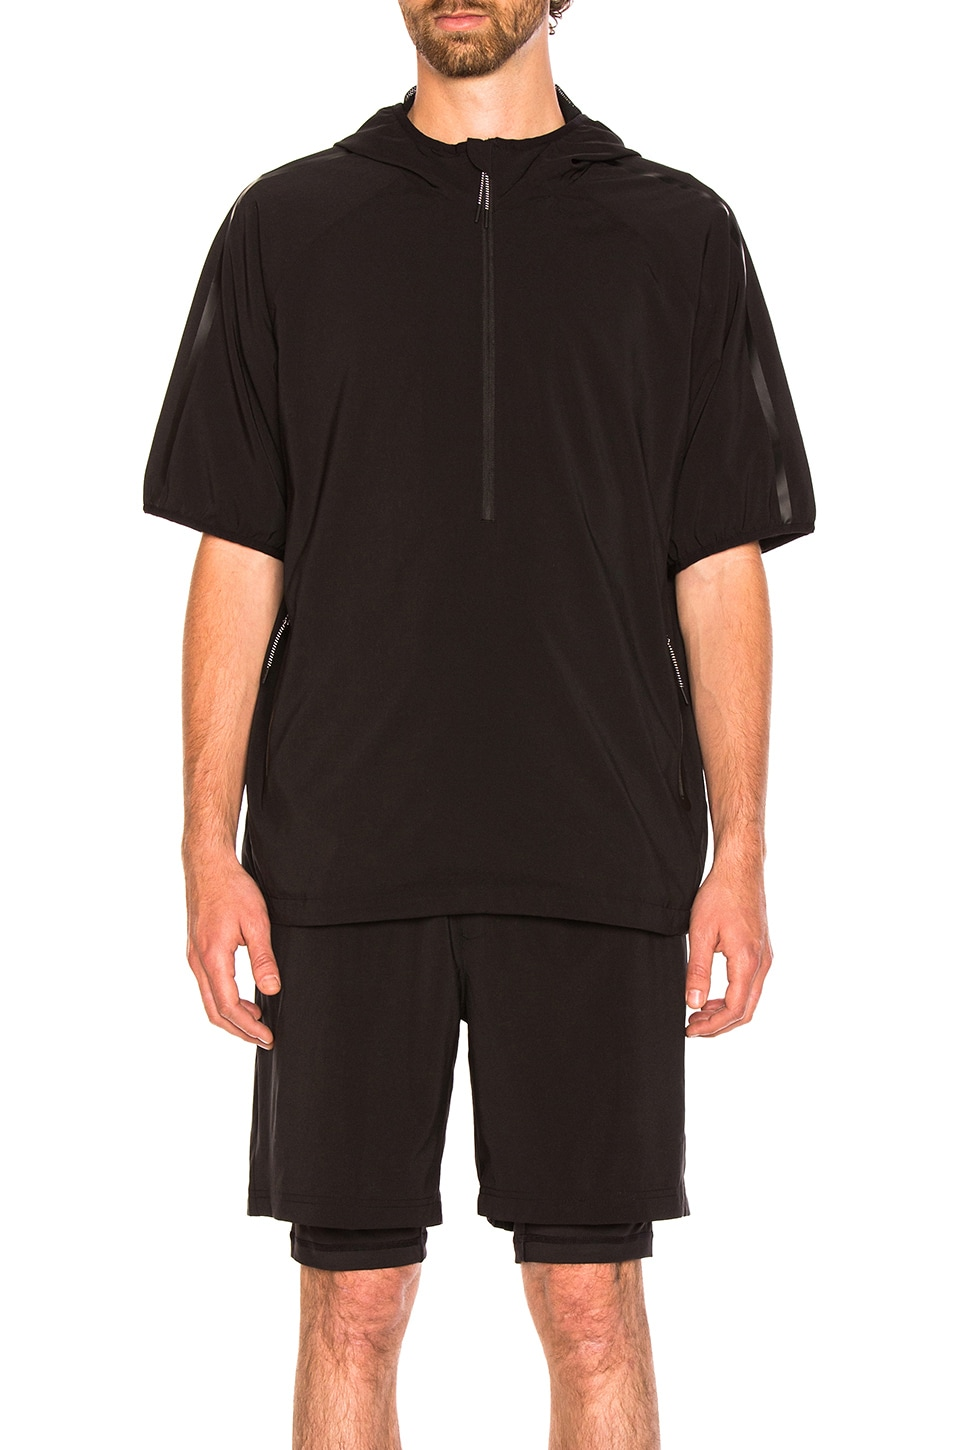 x Stampd Short Sleeve WB by Puma Select